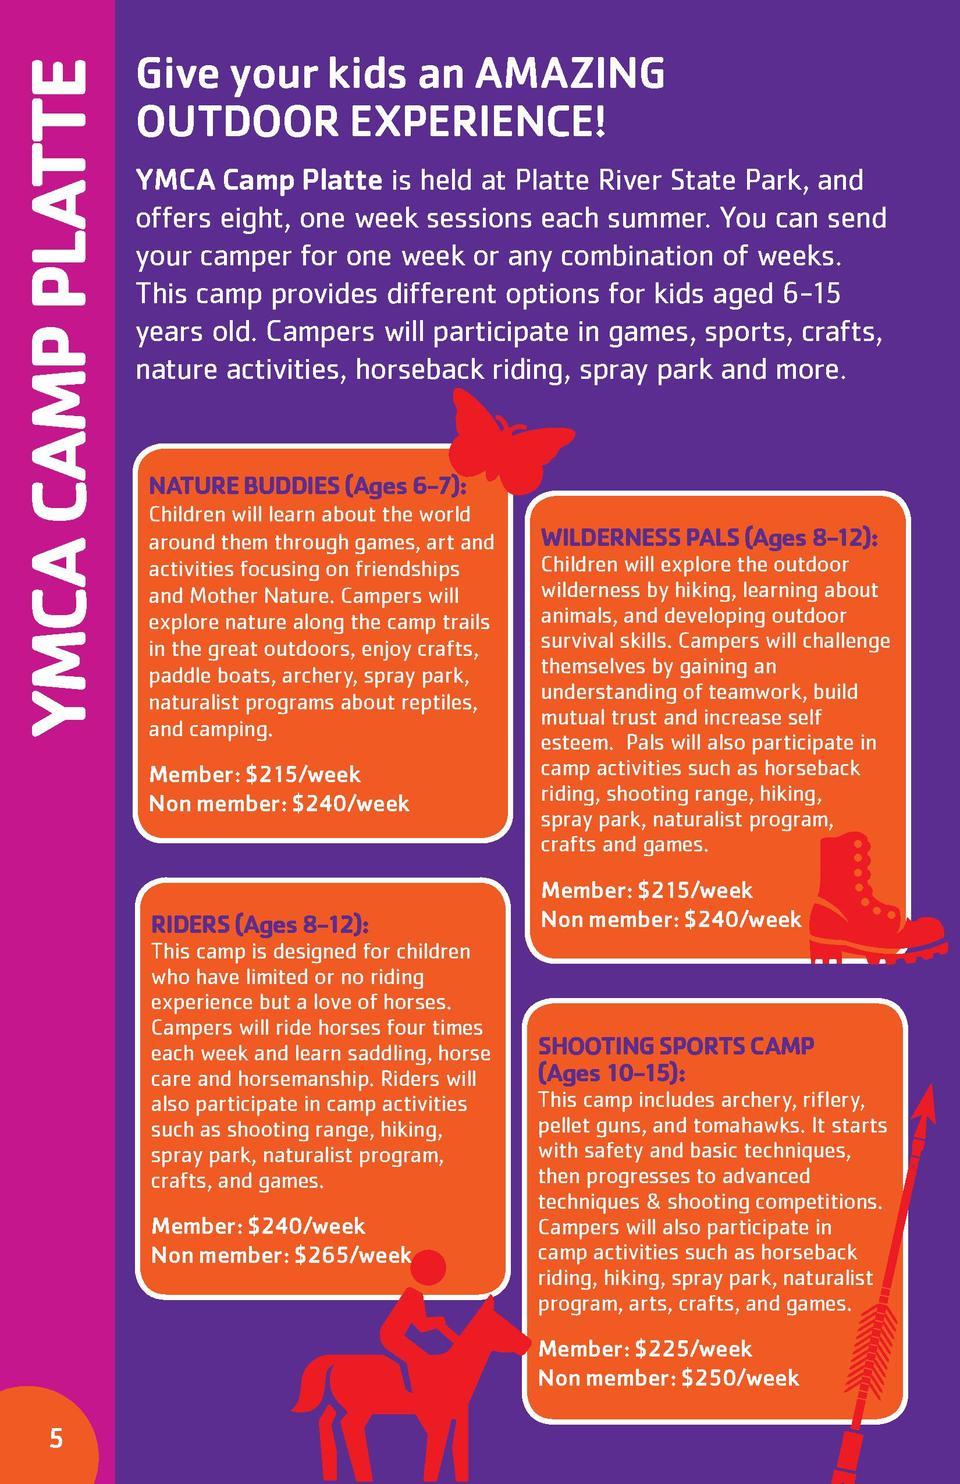 YMCA CAMP PLATTE  Give your kids an AMAZING OUTDOOR EXPERIENCE  YMCA Camp Platte is held at Platte River State Park, and o...